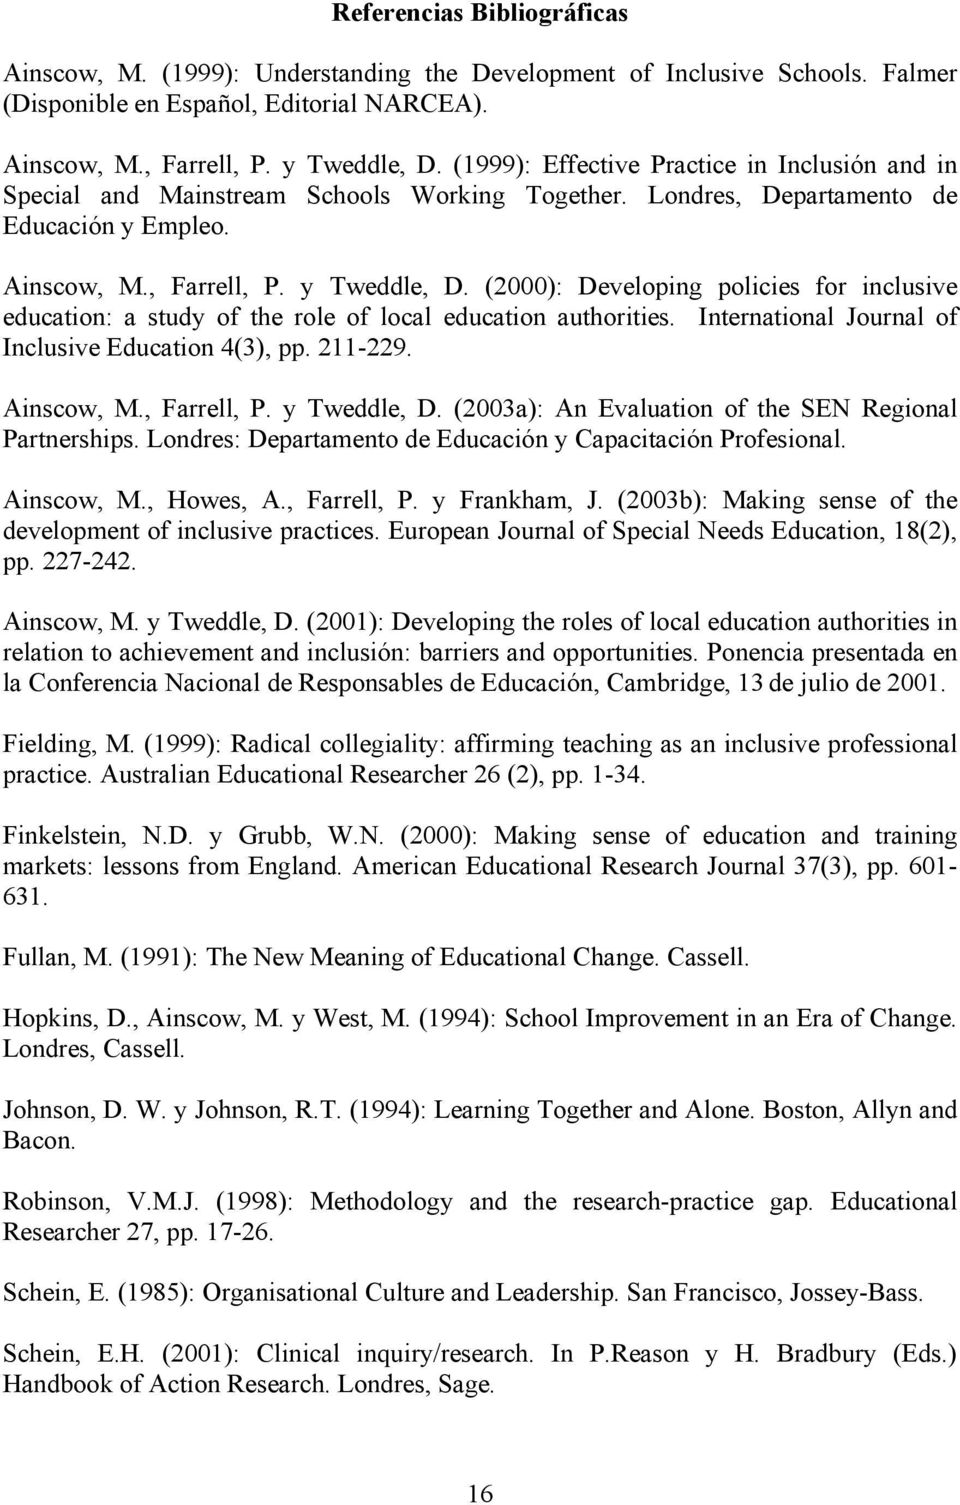 (2000): Developing policies for inclusive education: a study of the role of local education authorities. International Journal of Inclusive Education 4(3), pp. 211-229. Ainscow, M., Farrell, P.